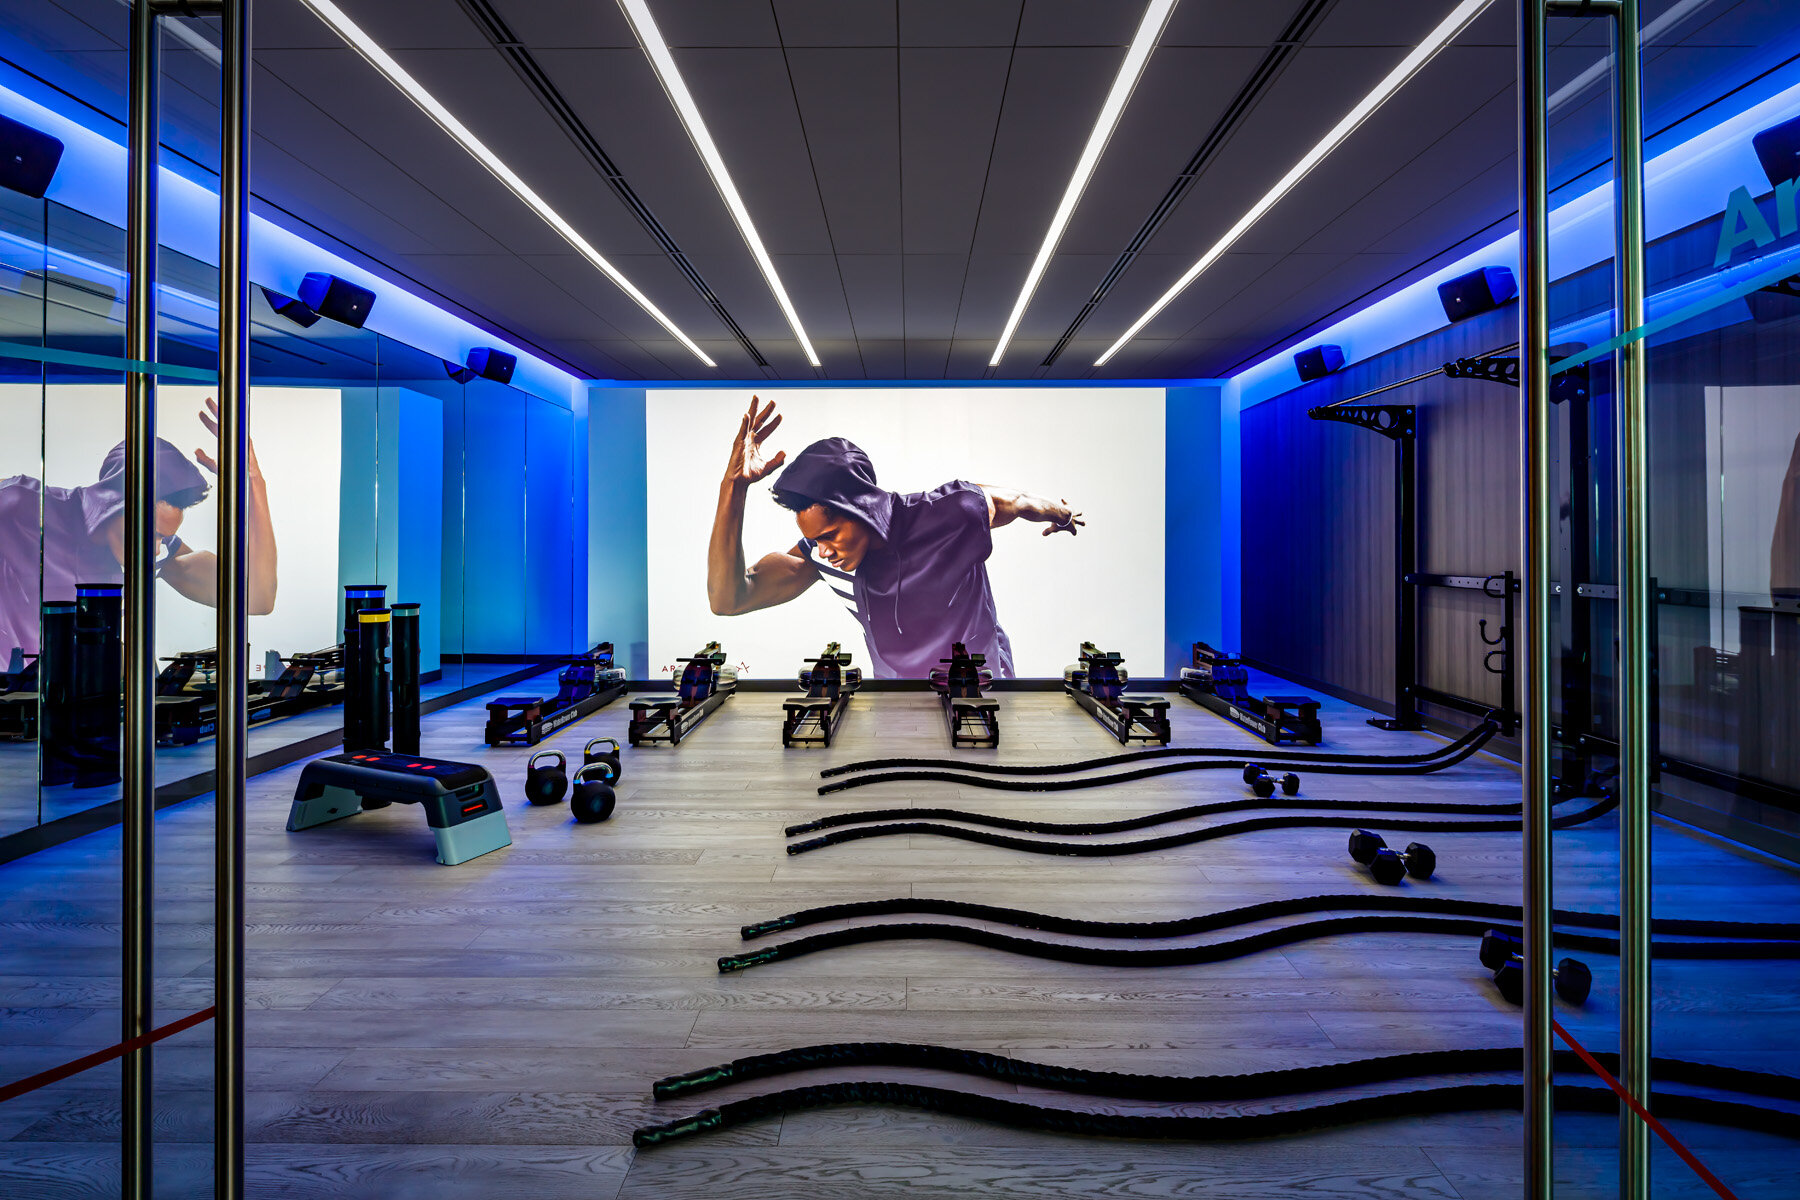 SWEAT TOGETHER - Experience our four intentionally designed studios. With Yoga, HIIT, Spin and Boxing classes, we offer curated fitness experiences to support you in maximizing your true potential.